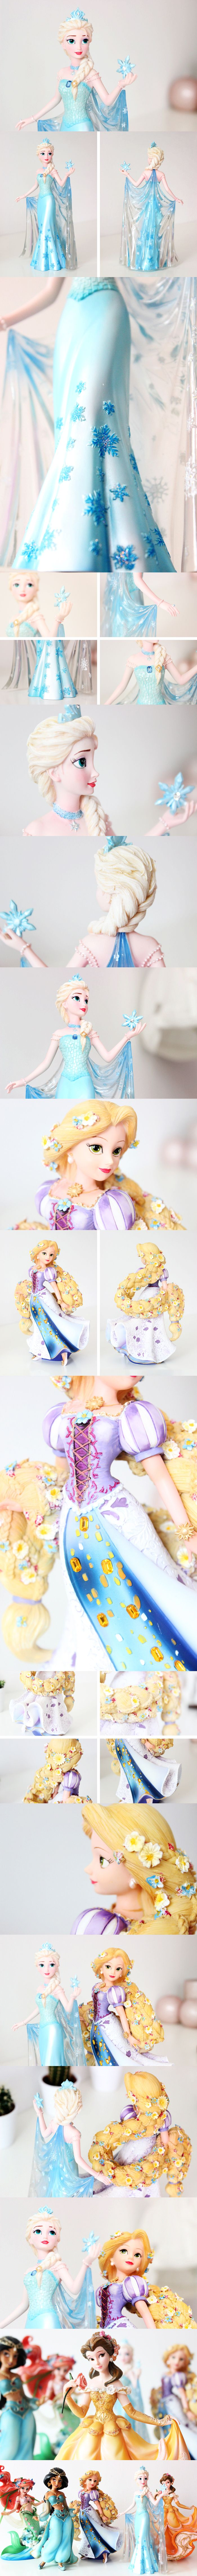 My Disney Princess Couture de Force Collection from Disney Showcase | Rapunzel, Elsa, Belle, Jasmine, Ariel | Frozen | Figurines, collectibles, statues, resin